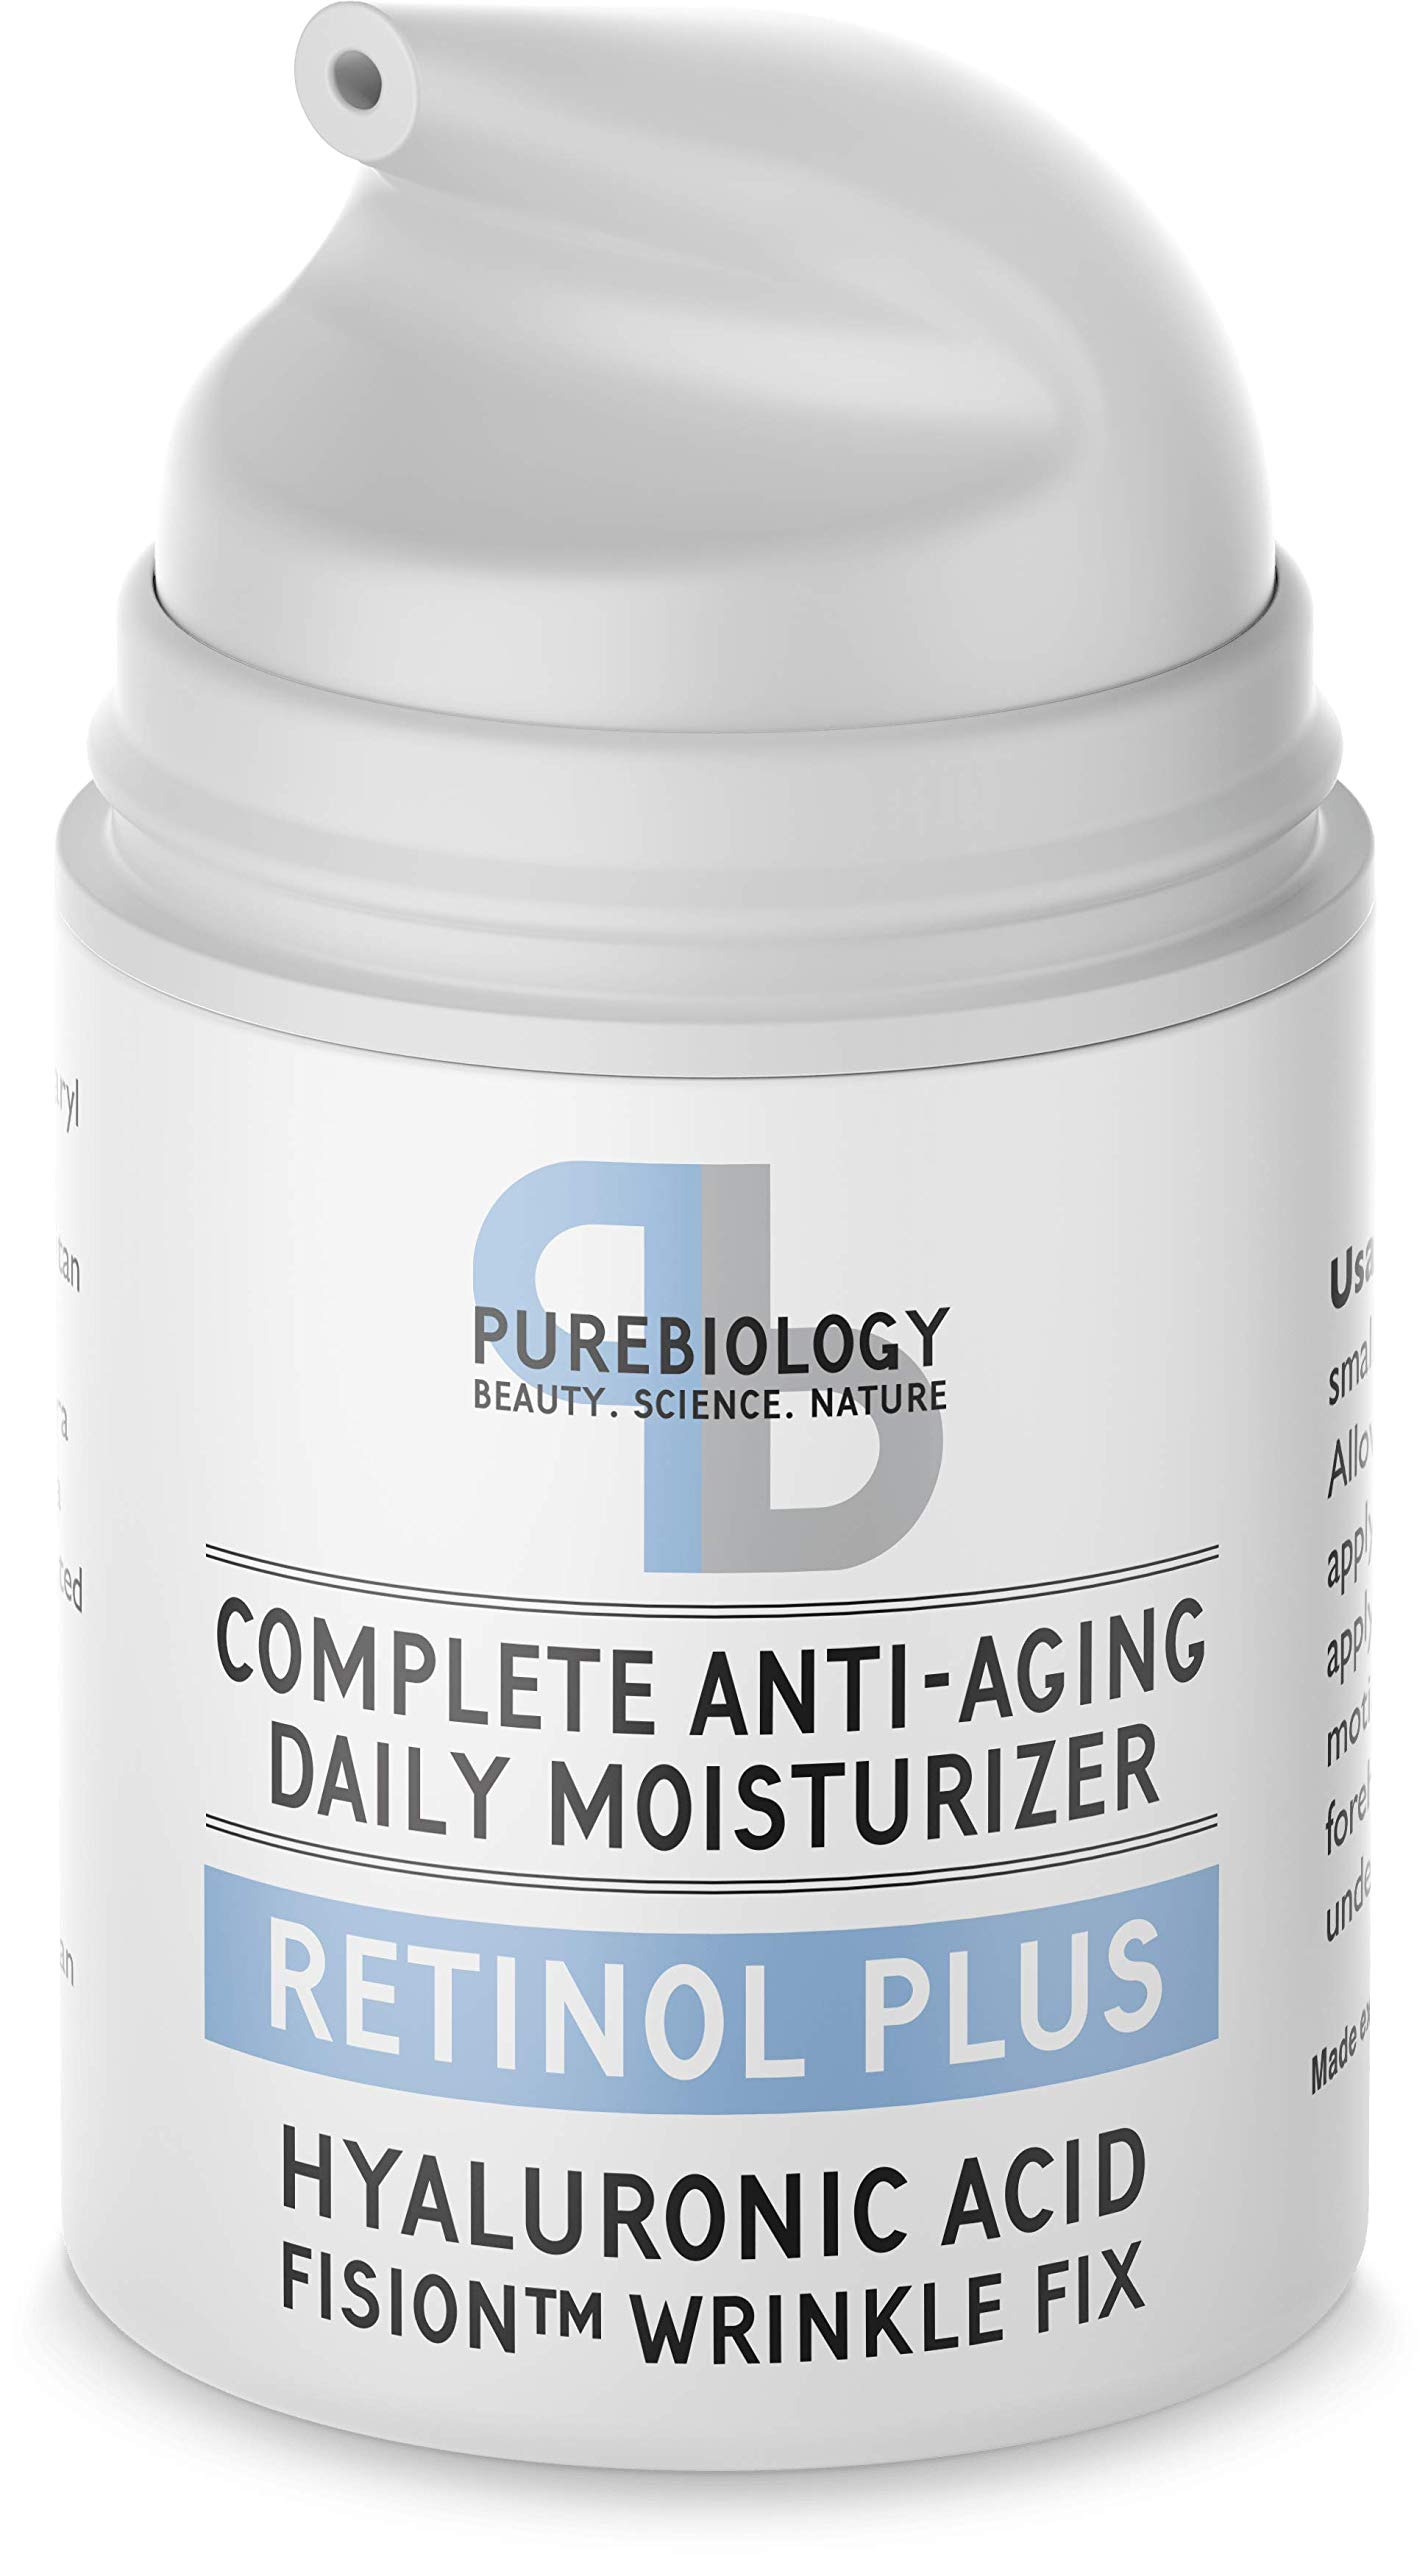 Pure Biology Retinol Moisturizer Cream with Hyaluronic Acid, Vitamins B5, E & Breakthrough Anti Aging, Anti Wrinkle Complex - Face & Eye Skin Care for Men & Women, All Skin Types, 1.7 OZ by Pure Biology